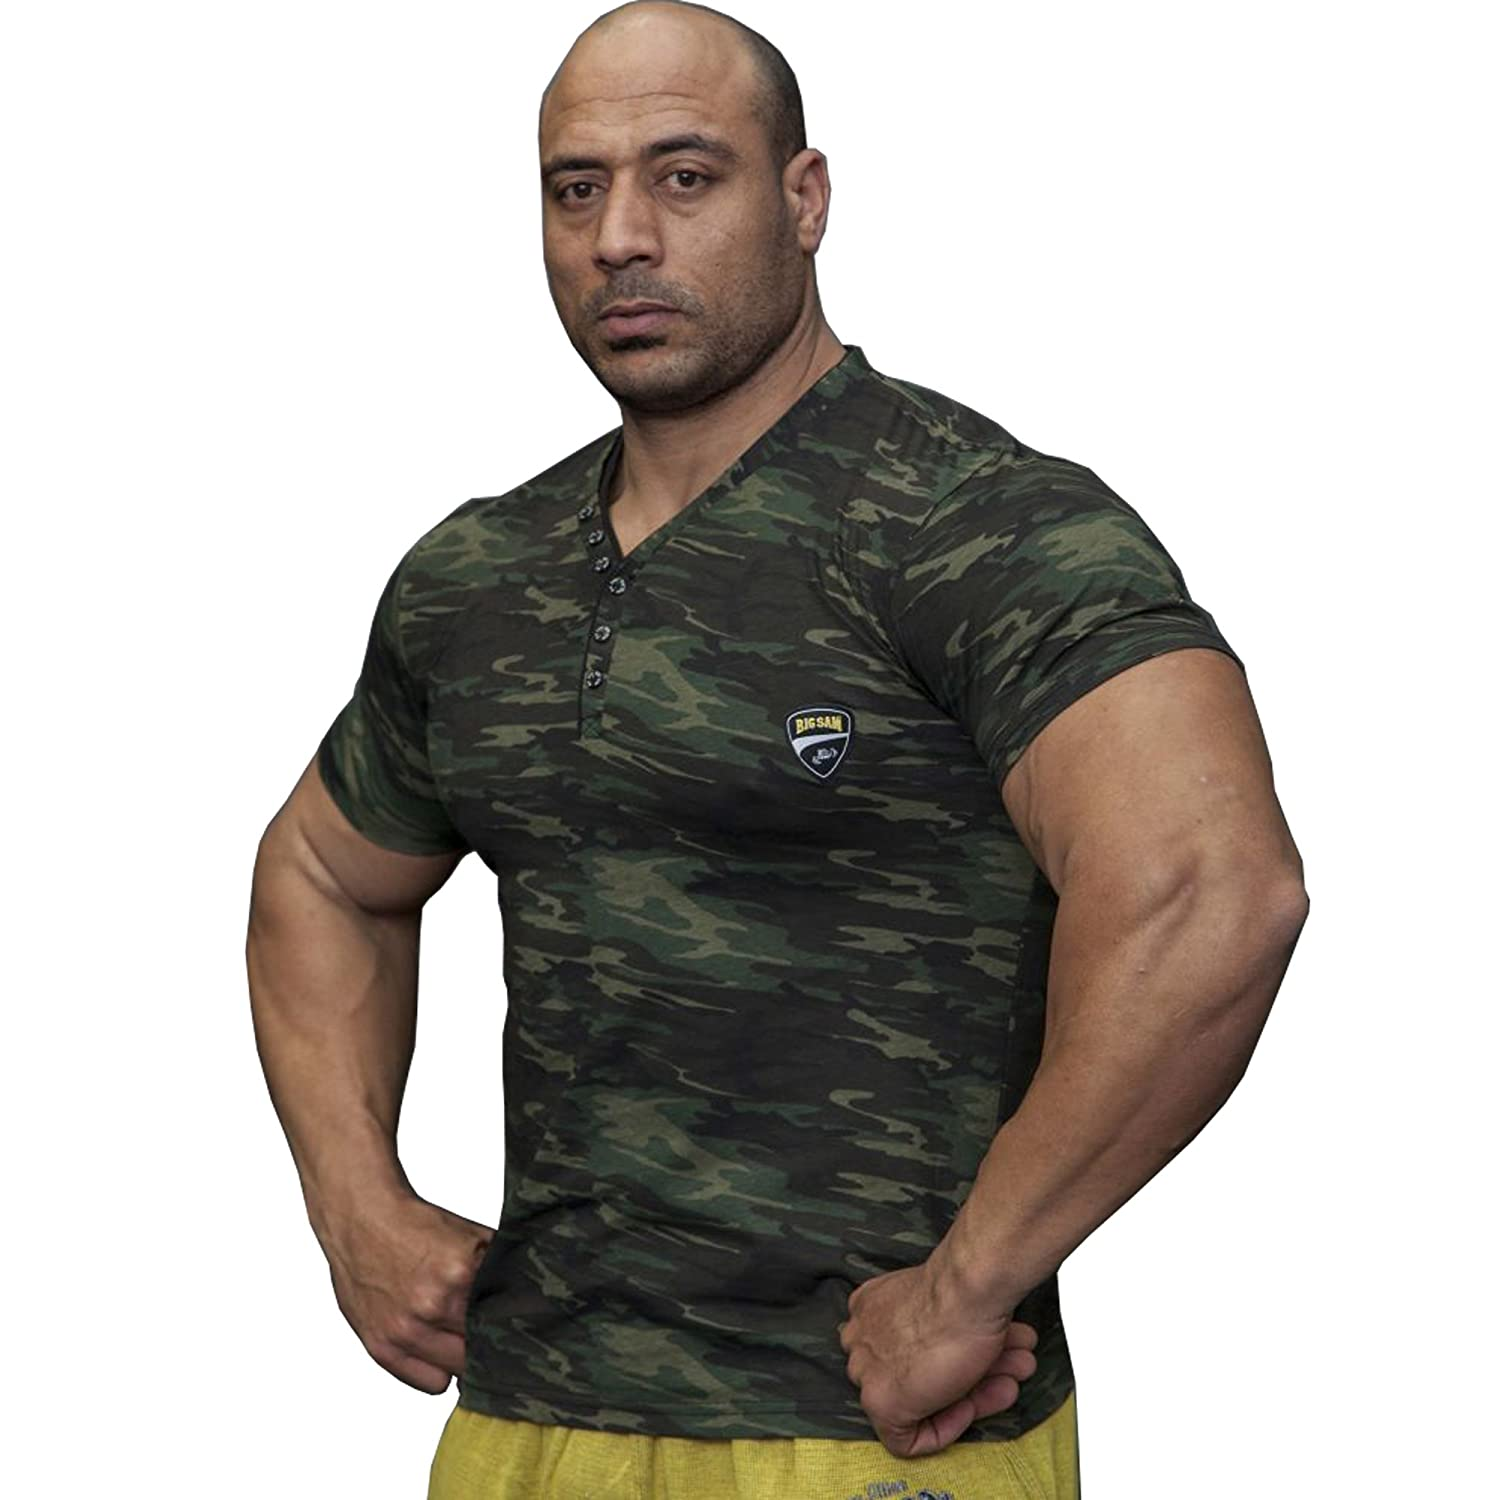 BIG SM EXTREME SPORTSWEAR Herren T-Shirt Stretch Shirt Bodybuilding Gym 2839